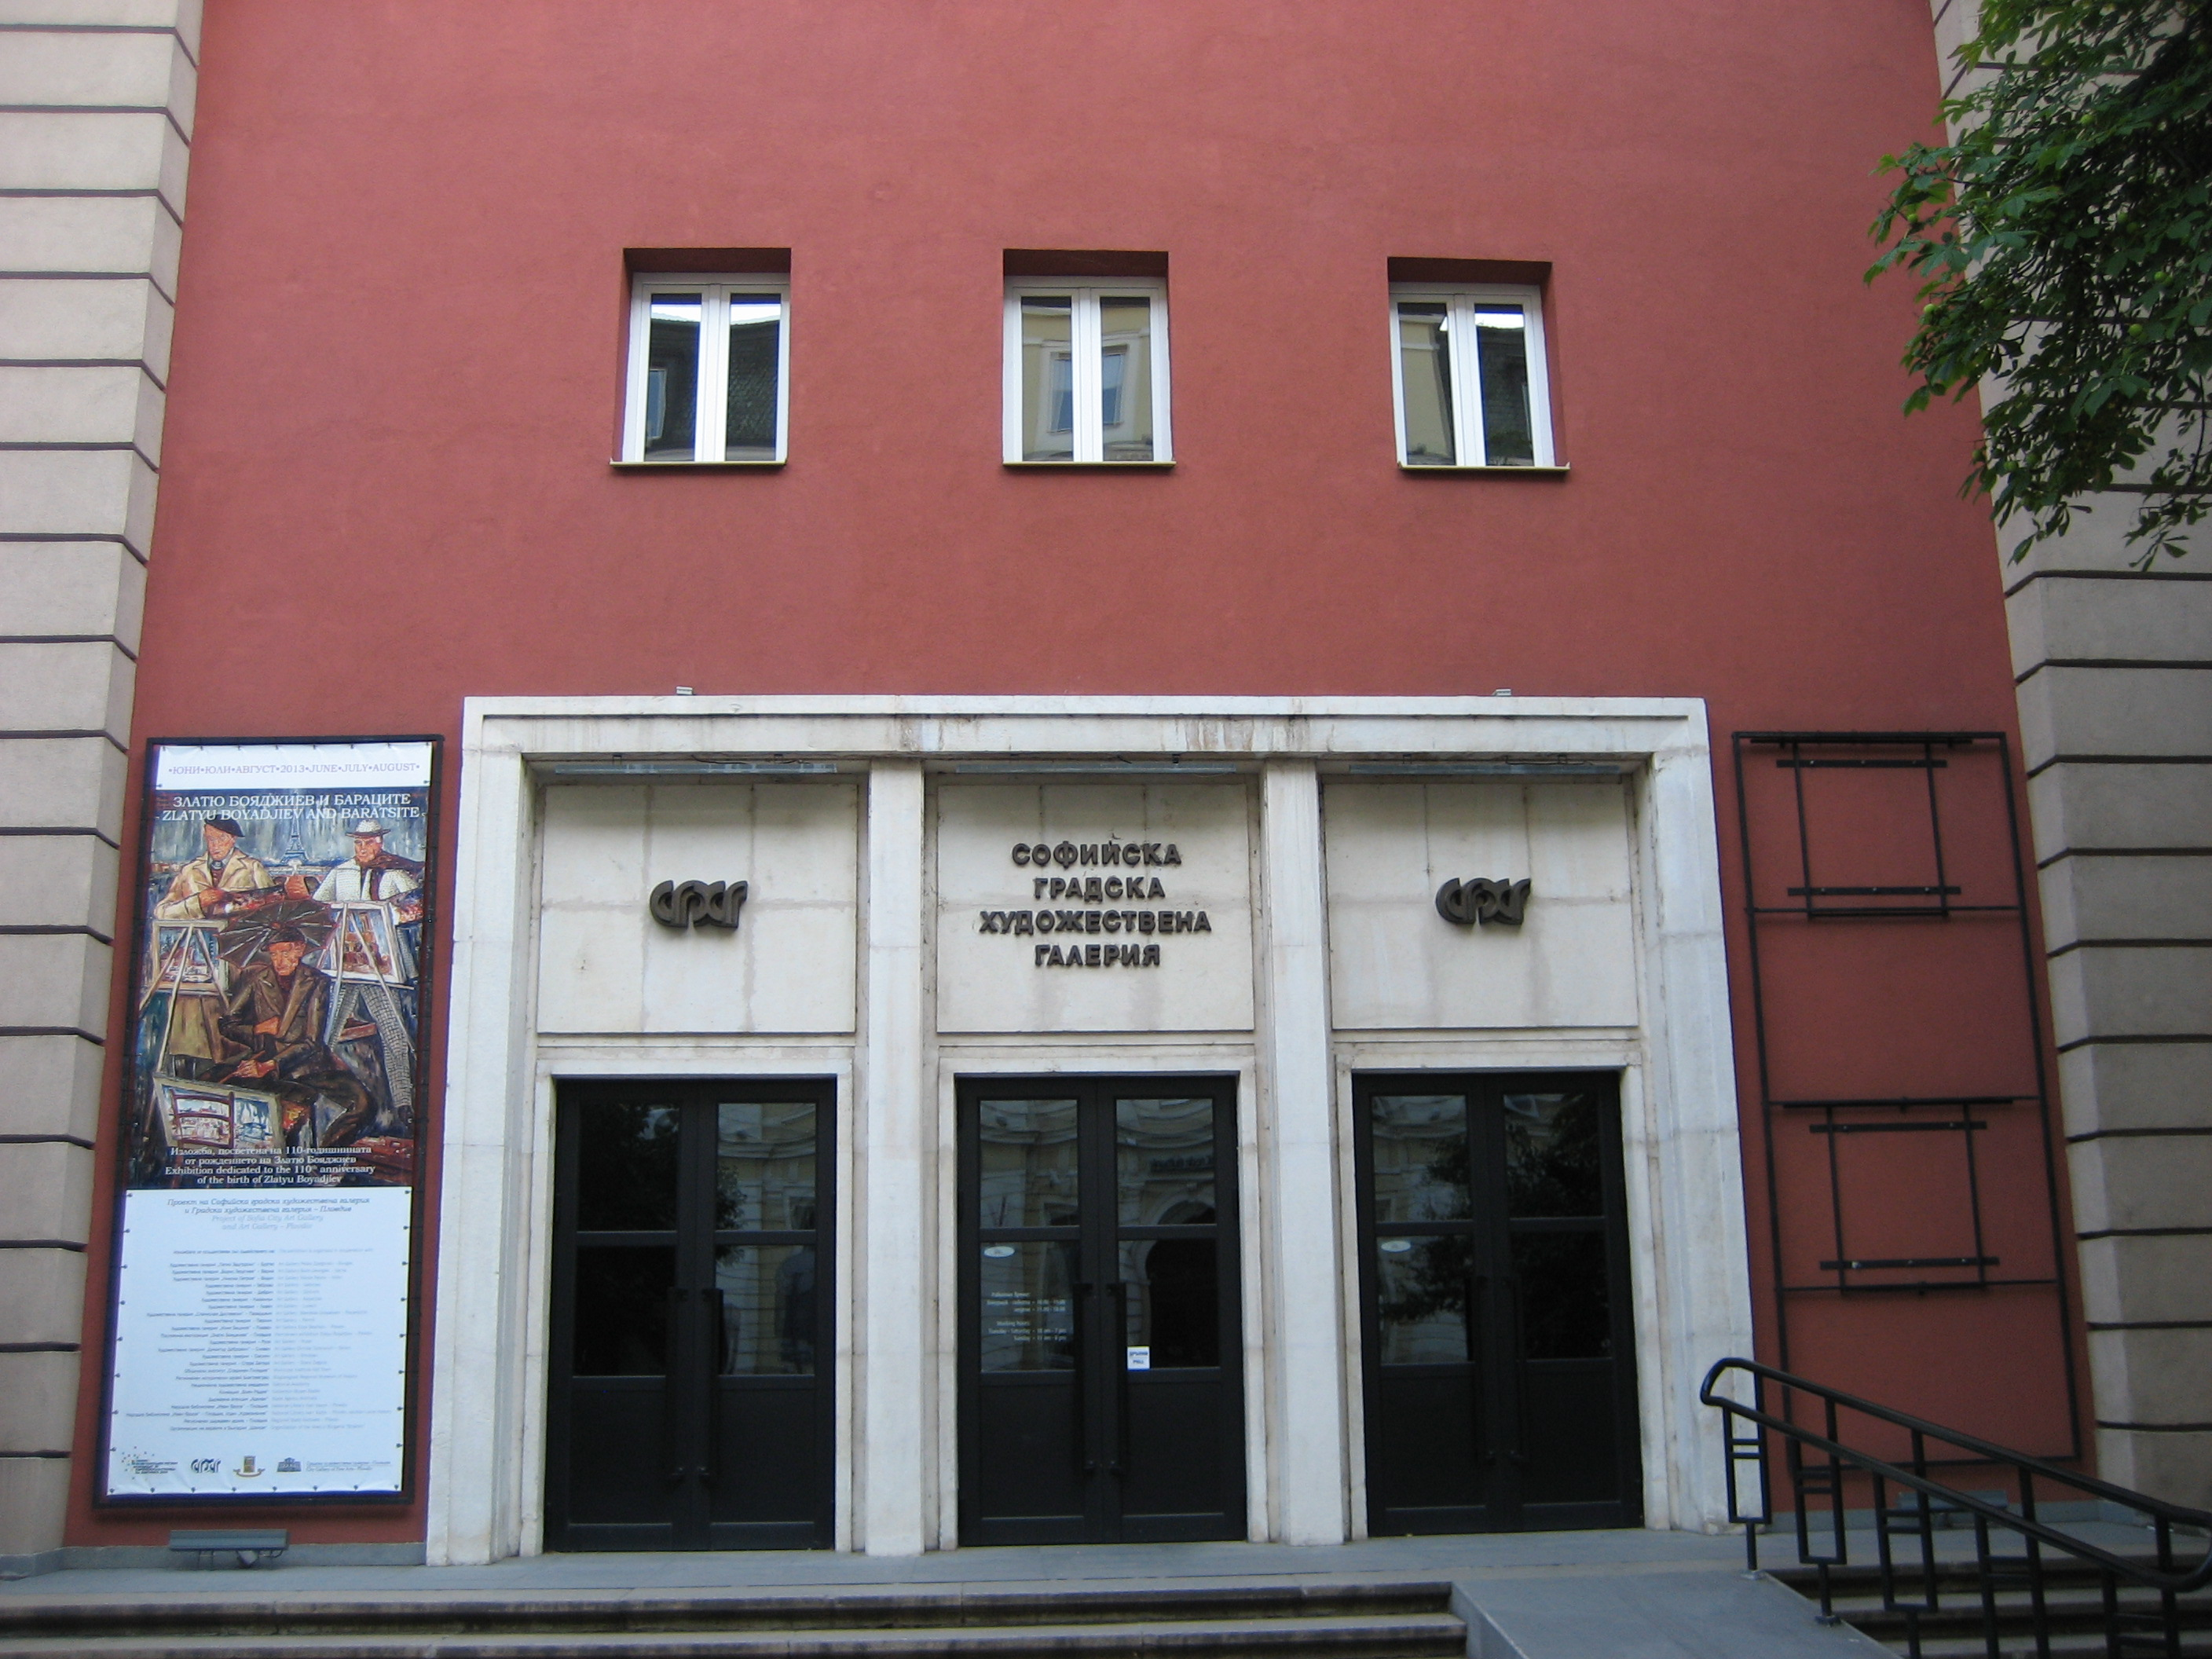 Sofia art gallery